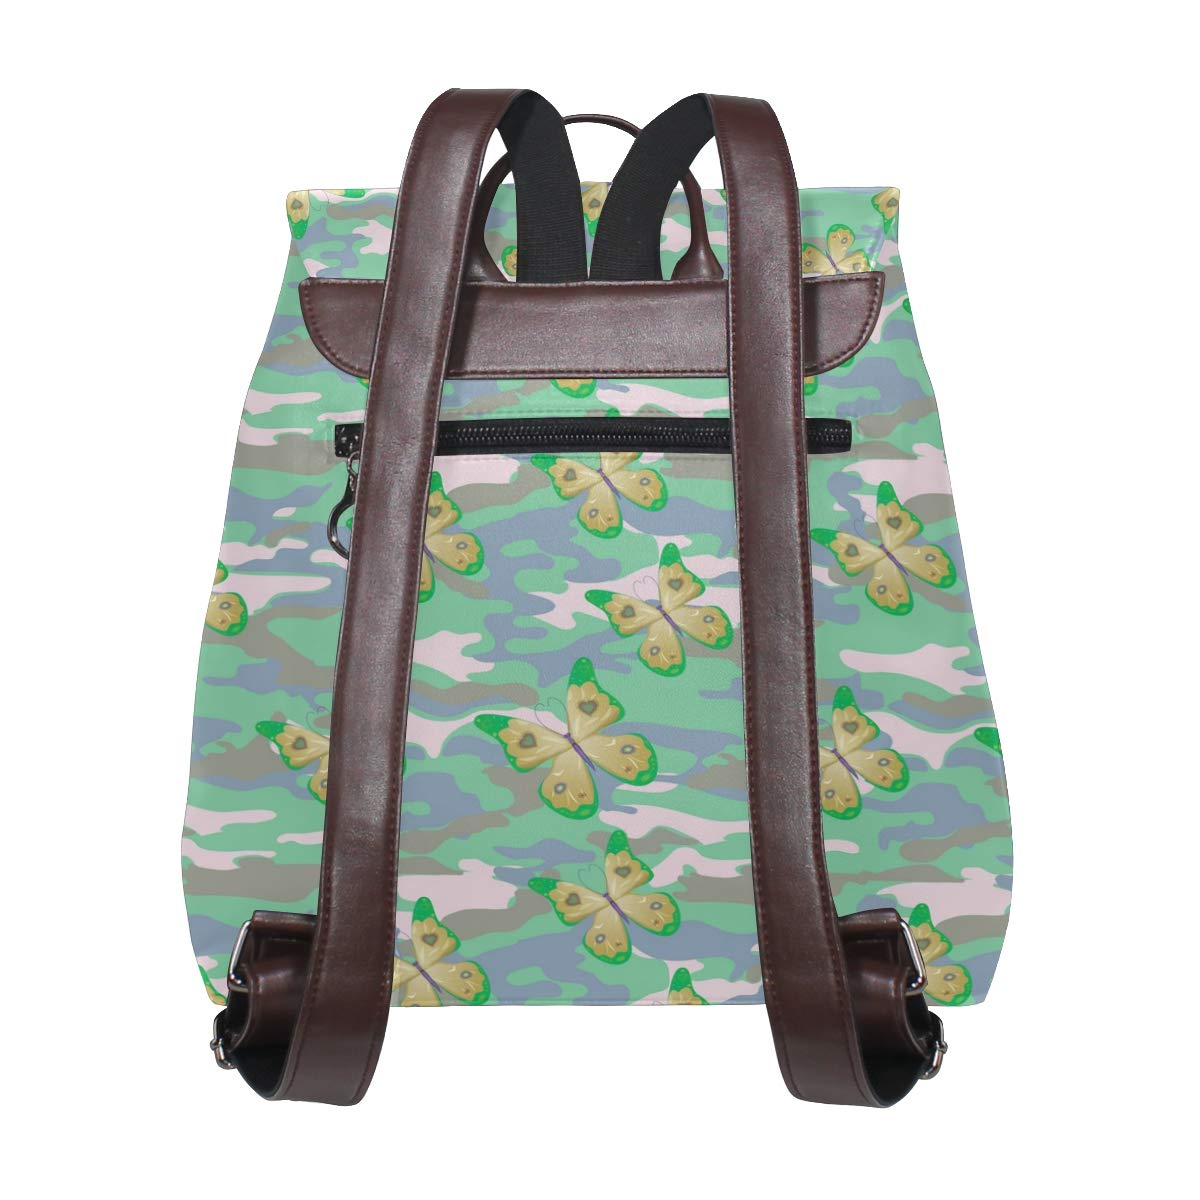 Unisex PU Leather Backpack Yellow Butterfly On The Teal Camo Print Womens Casual Daypack Mens Travel Sports Bag Boys College Bookbag